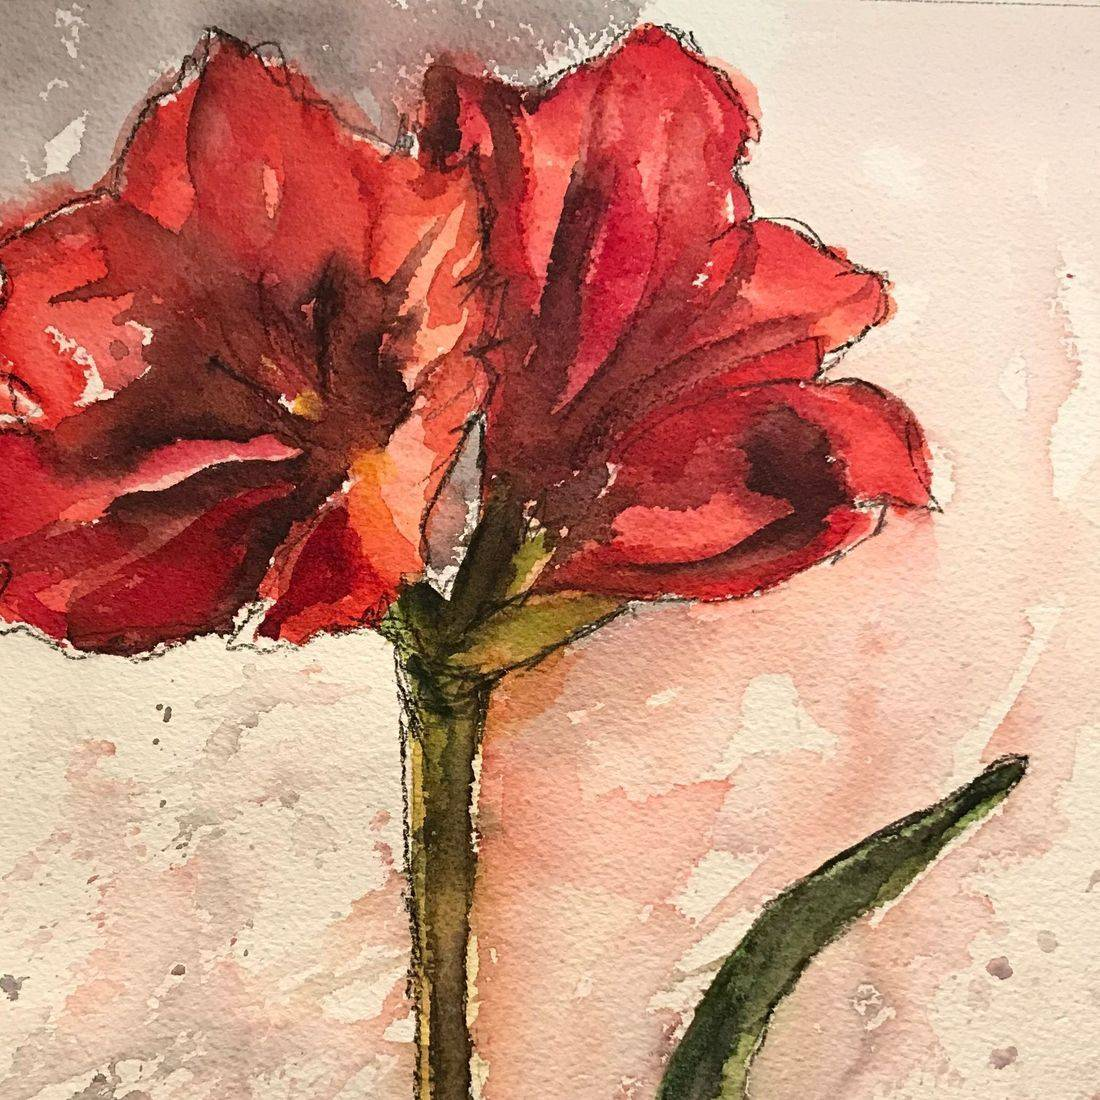 R Putbrese Watercolor, Rebecca Krutsinger watercolor painting of Floral